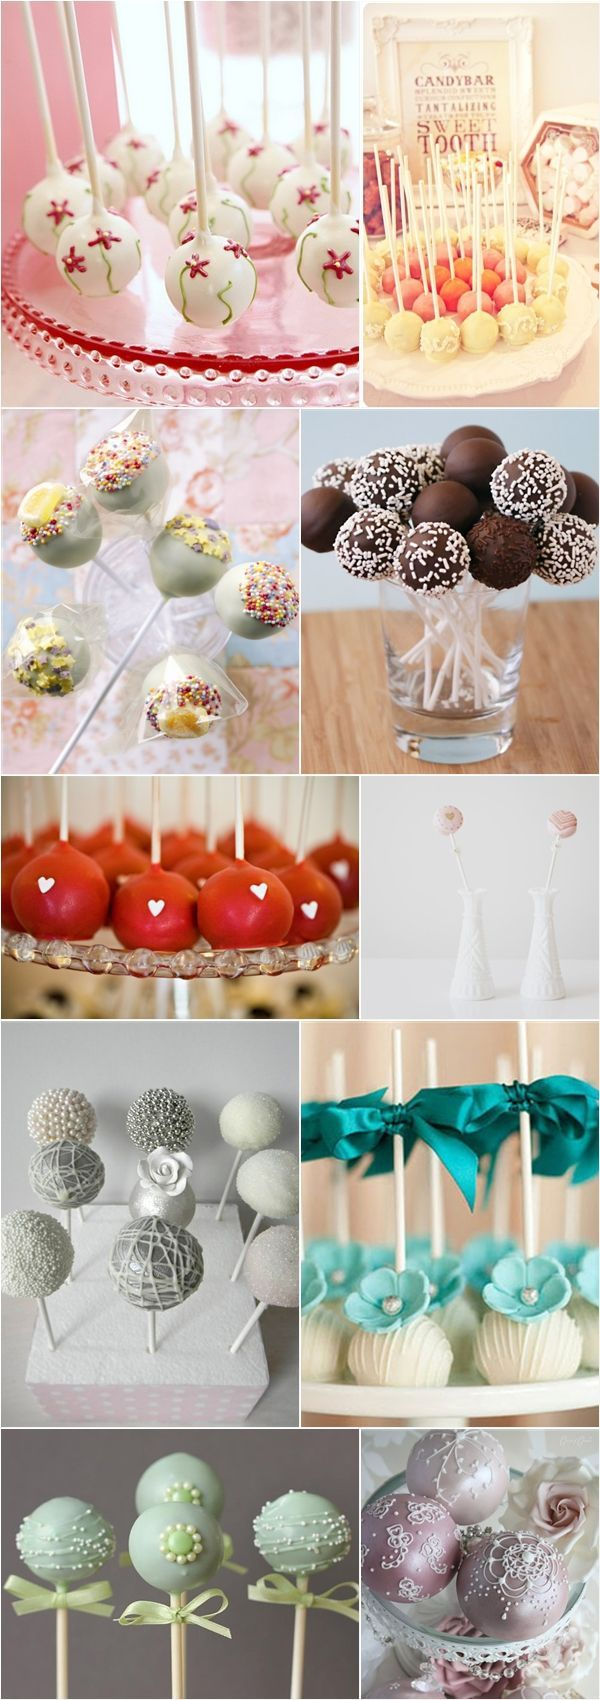 I just decided that I want cake pops instead of cake...partially because it'll keep us all from overeating